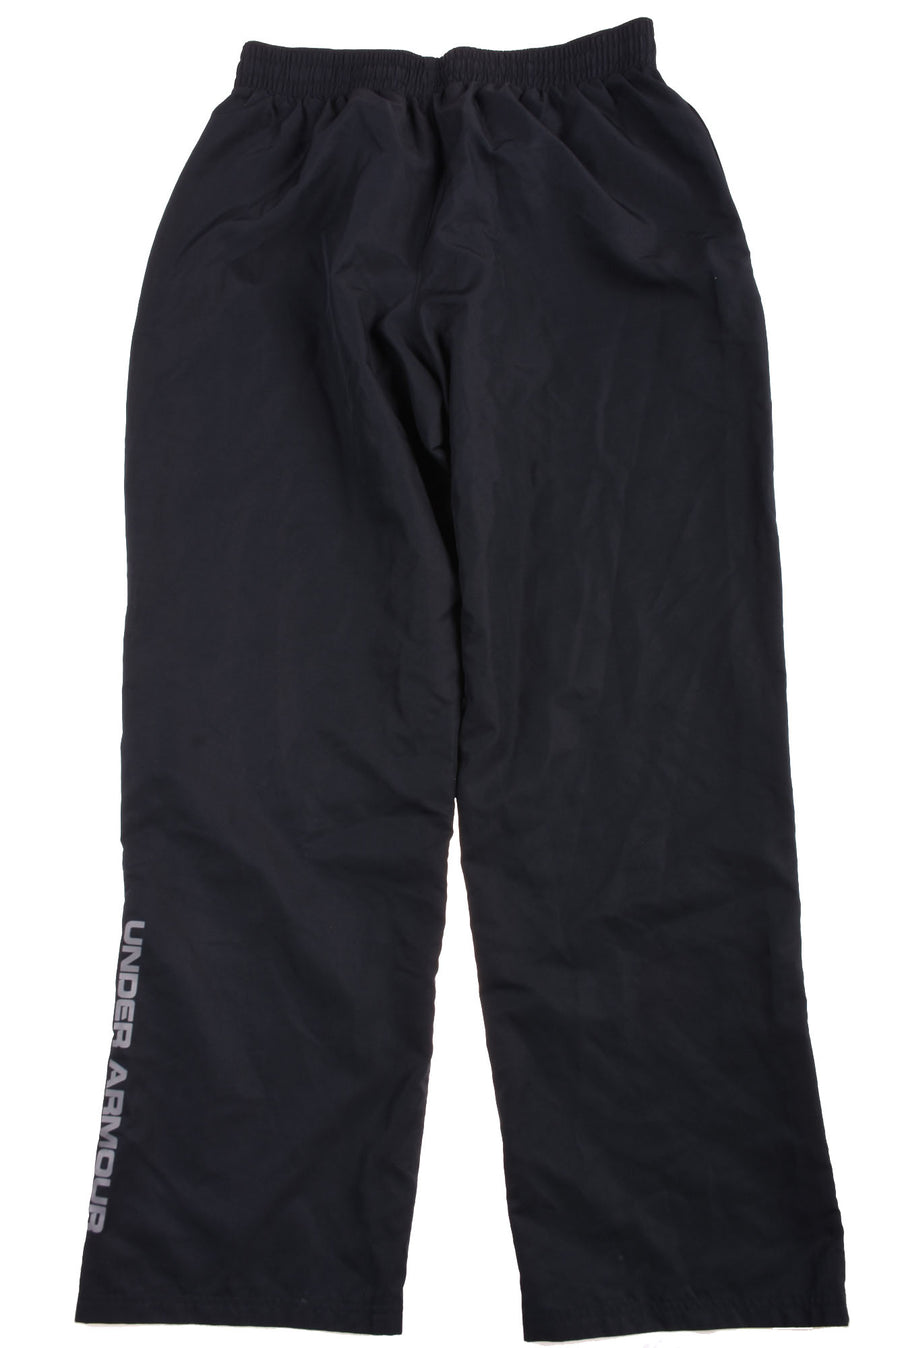 USED Under Armour Men's Pants Large Black